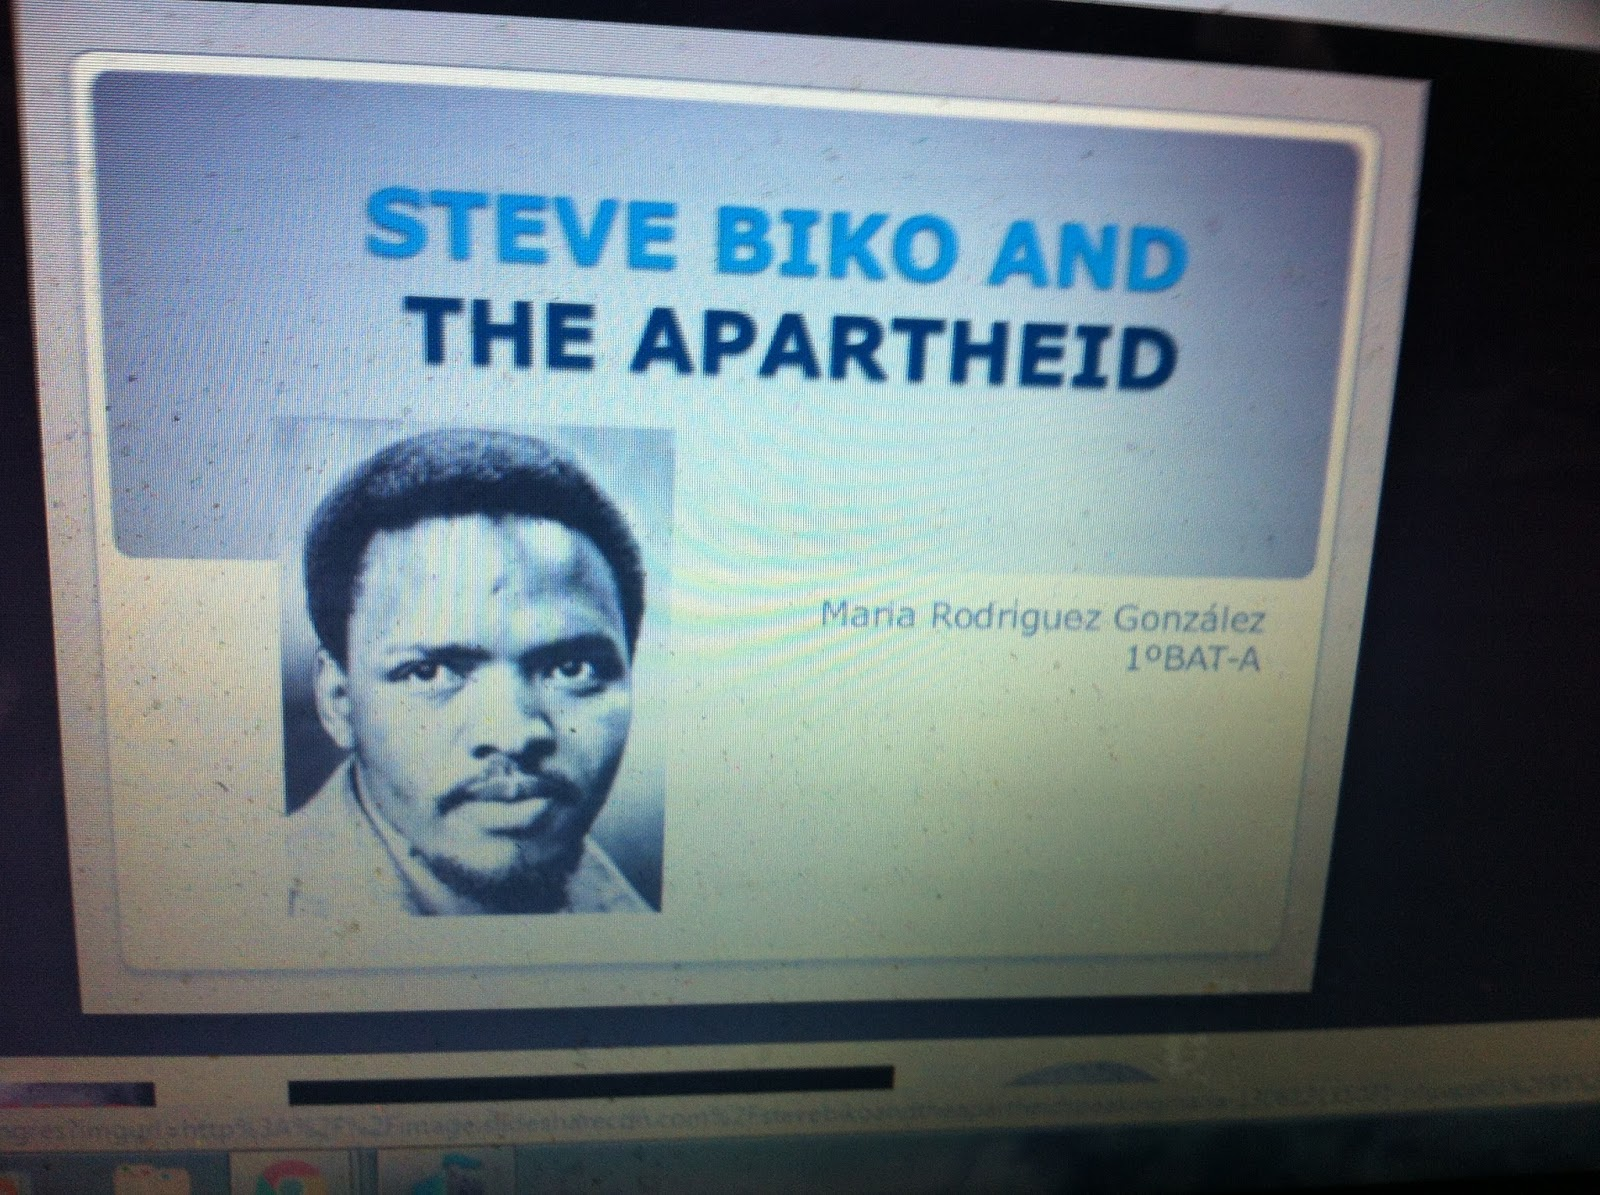 steve biko social justice hall of Cry freedom is a 1987 british-south african epic drama film directed by richard attenborough, set in late-1970s apartheid era south africathe screenplay was written by john briley based on a pair of books by journalist donald woodsthe film centres on the real-life events involving black activist steve biko and his friend donald woods, who initially finds him destructive, and attempts to.